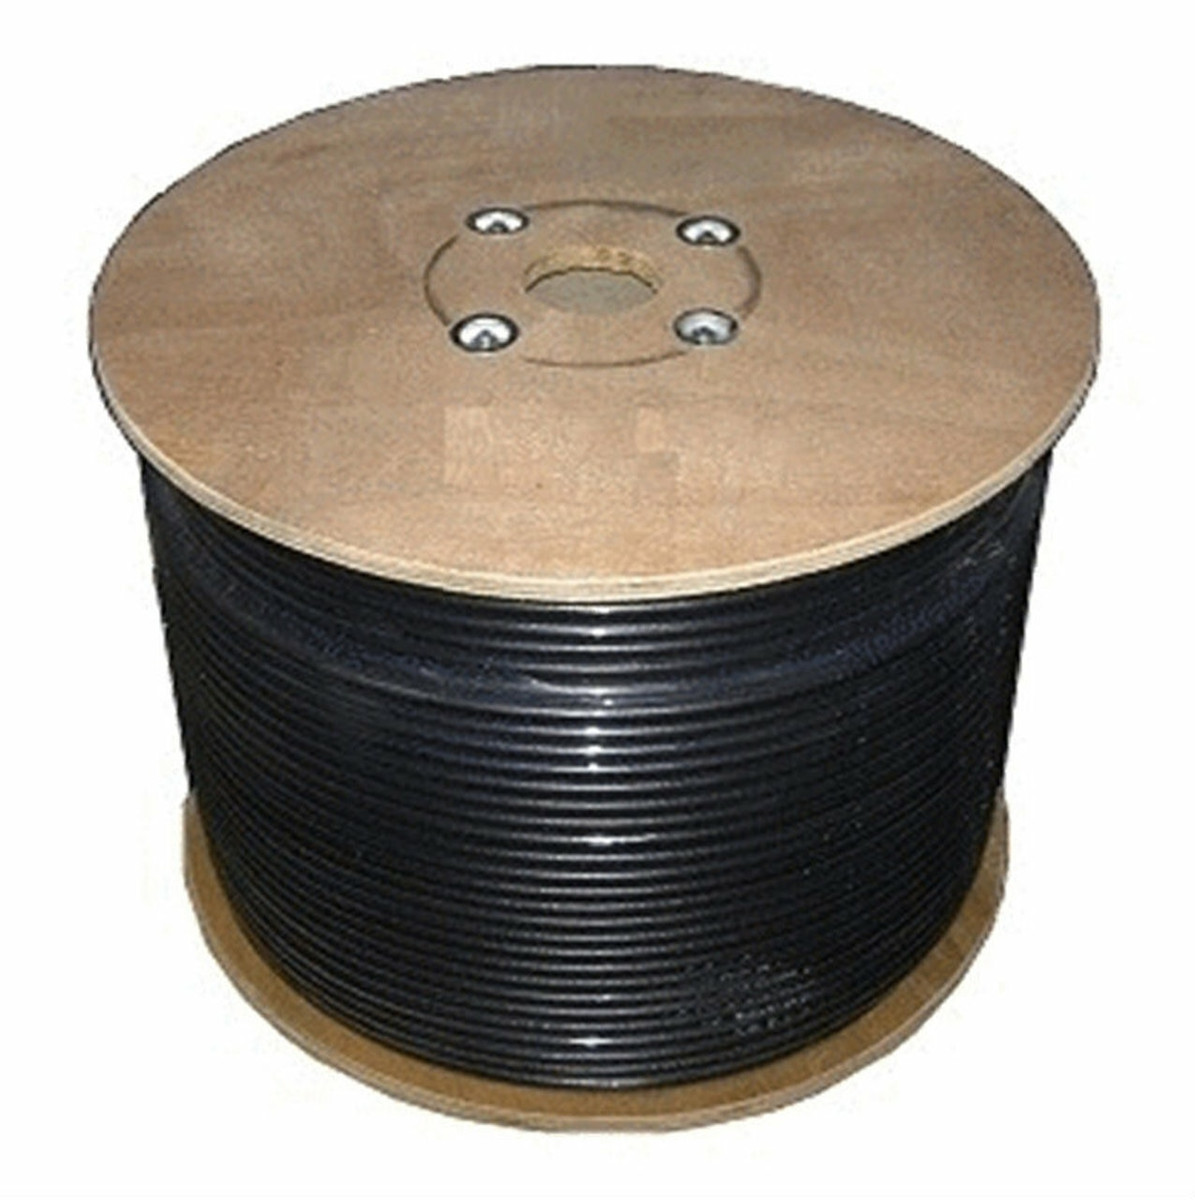 Bolton Technical Bolton600 Black Ultra Low-Loss Cable Spool   500ft